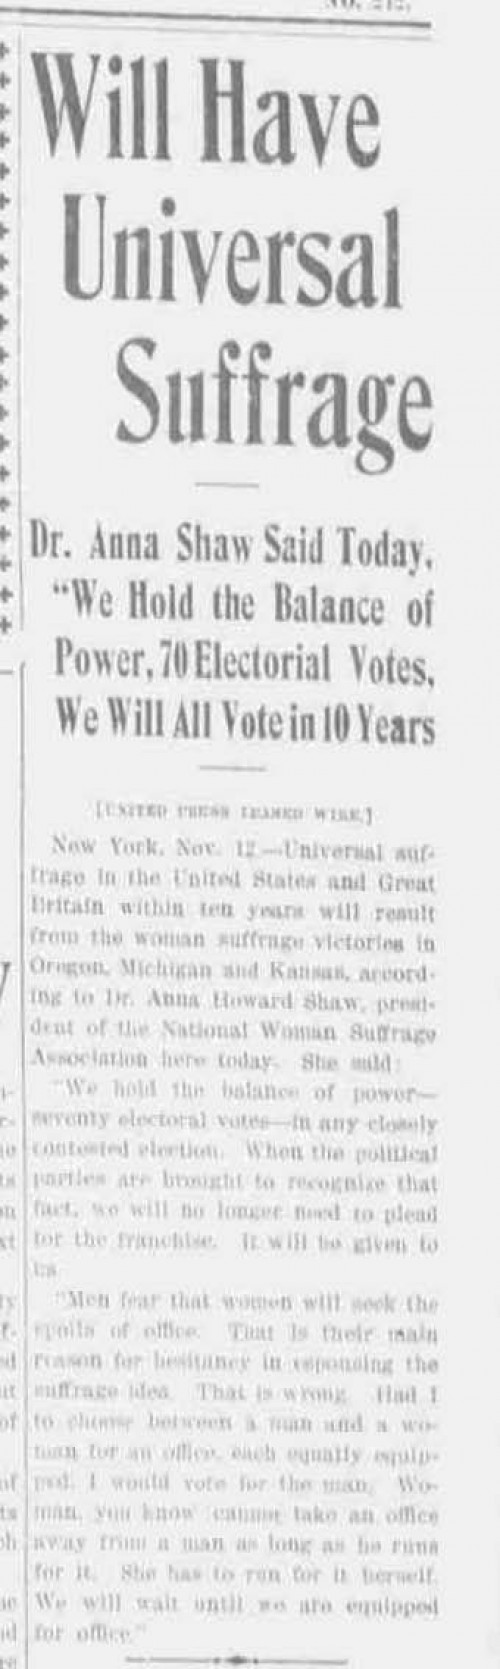 http://centuryofaction.org/images/uploads/Will_Have_Universal_Suffrage_Salem_Daily_Capital_Journal_November_12,_1912_1_thumb.jpg